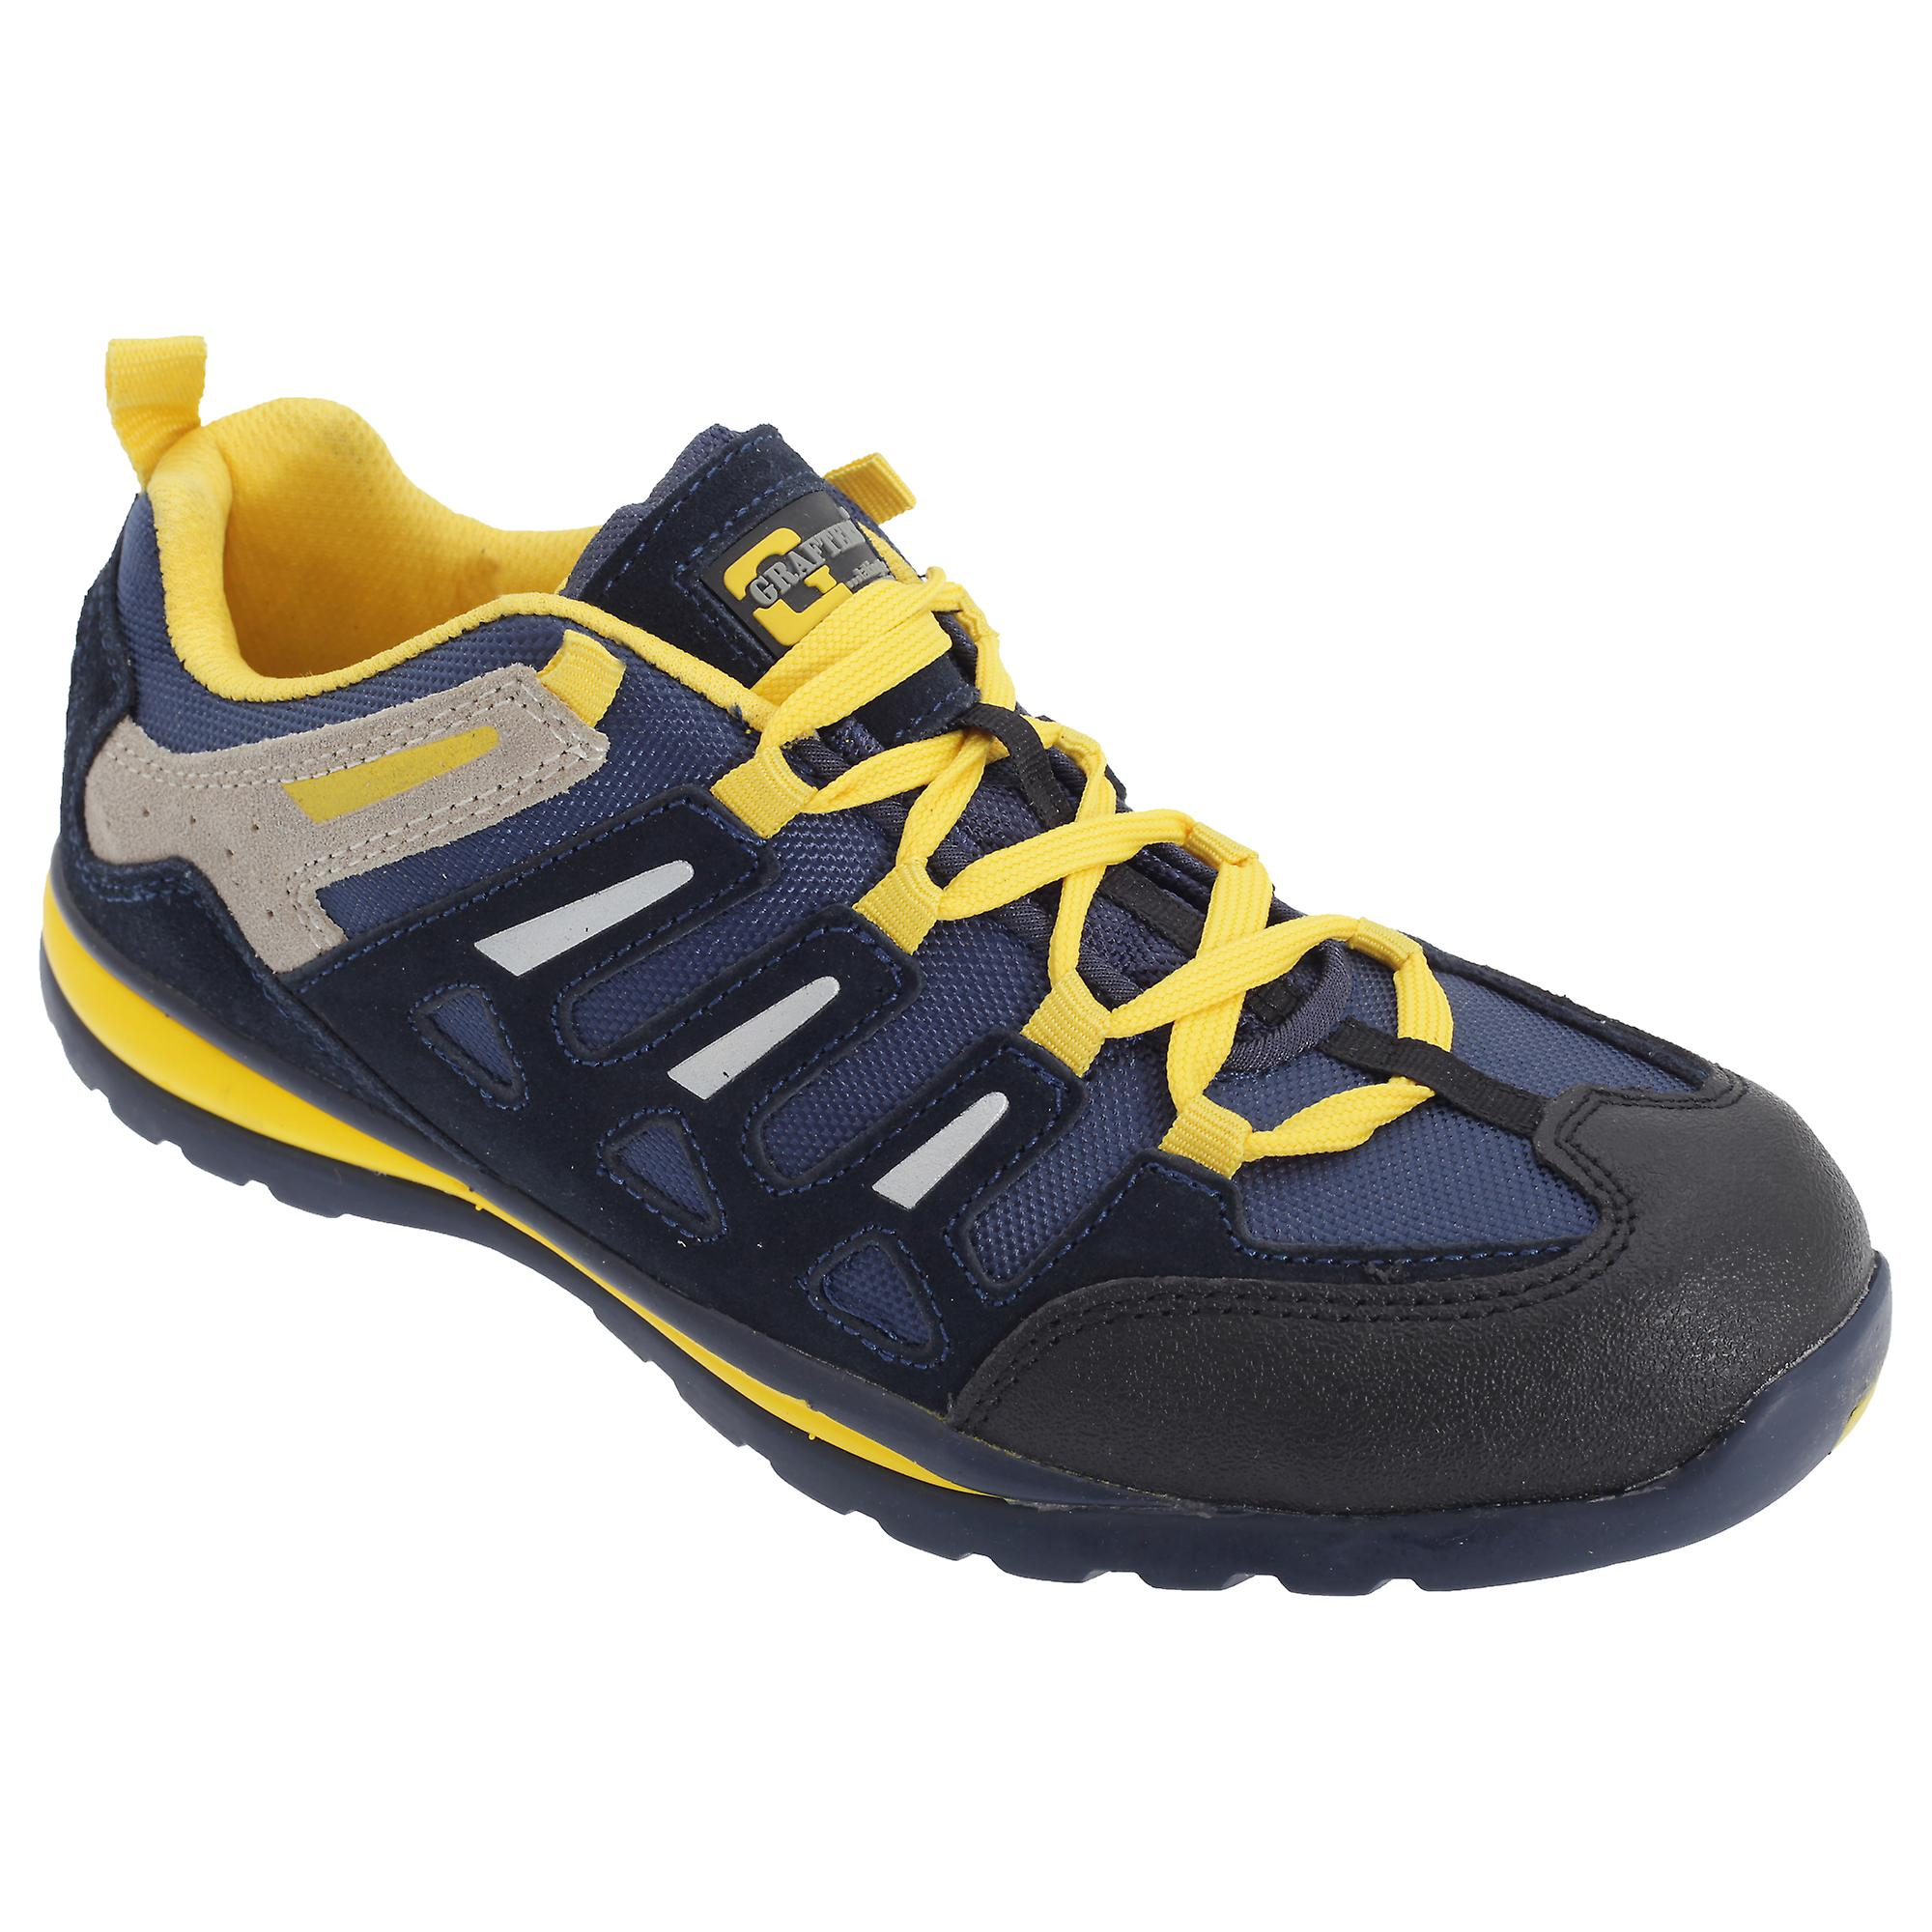 Grafters Mens Trainer Suede Safety Toe Cap Trainer Mens Shoes c3ccb1